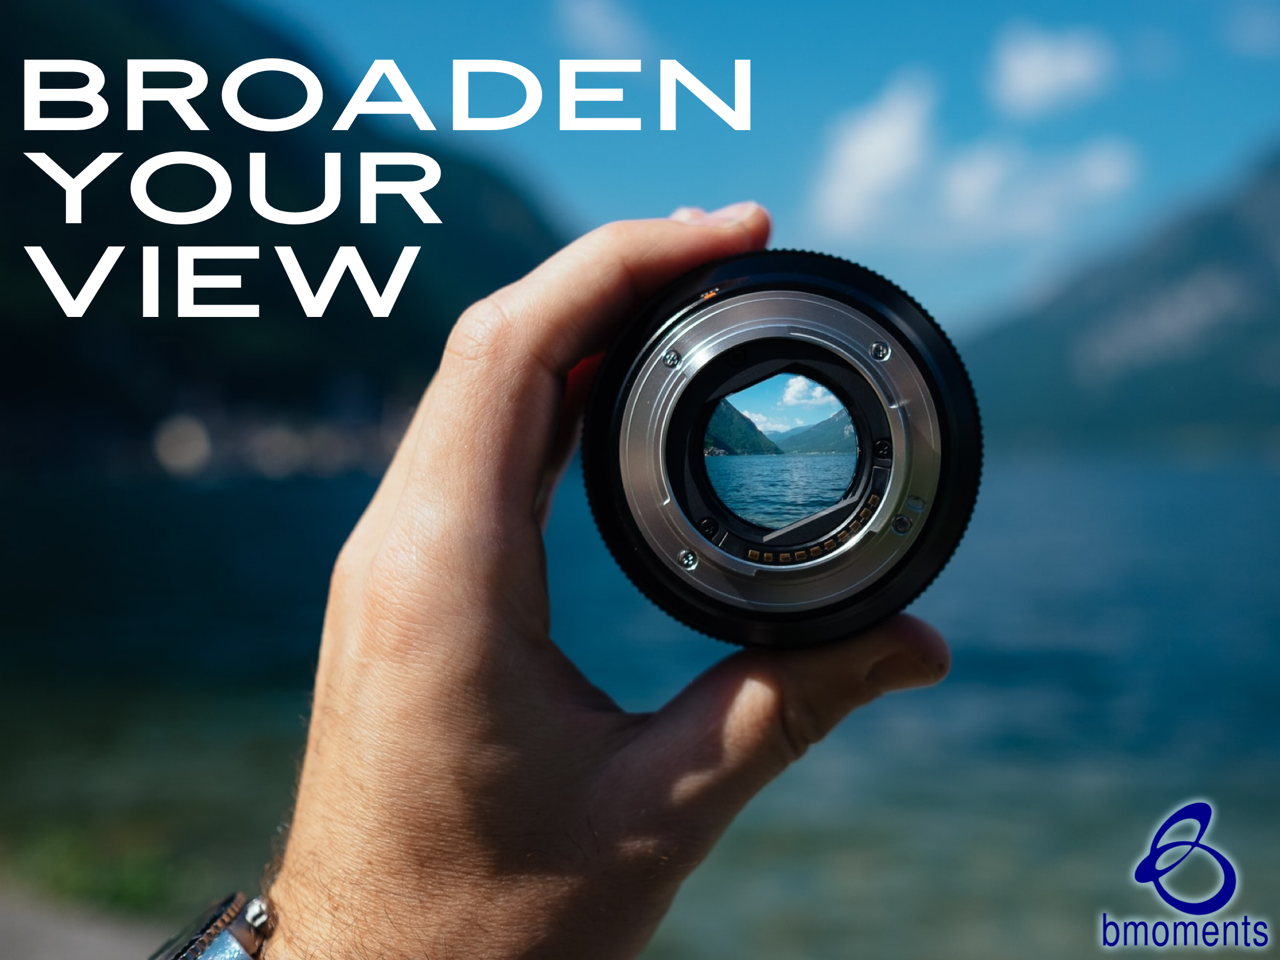 Broaden Your View: A Difficult and Defining Year